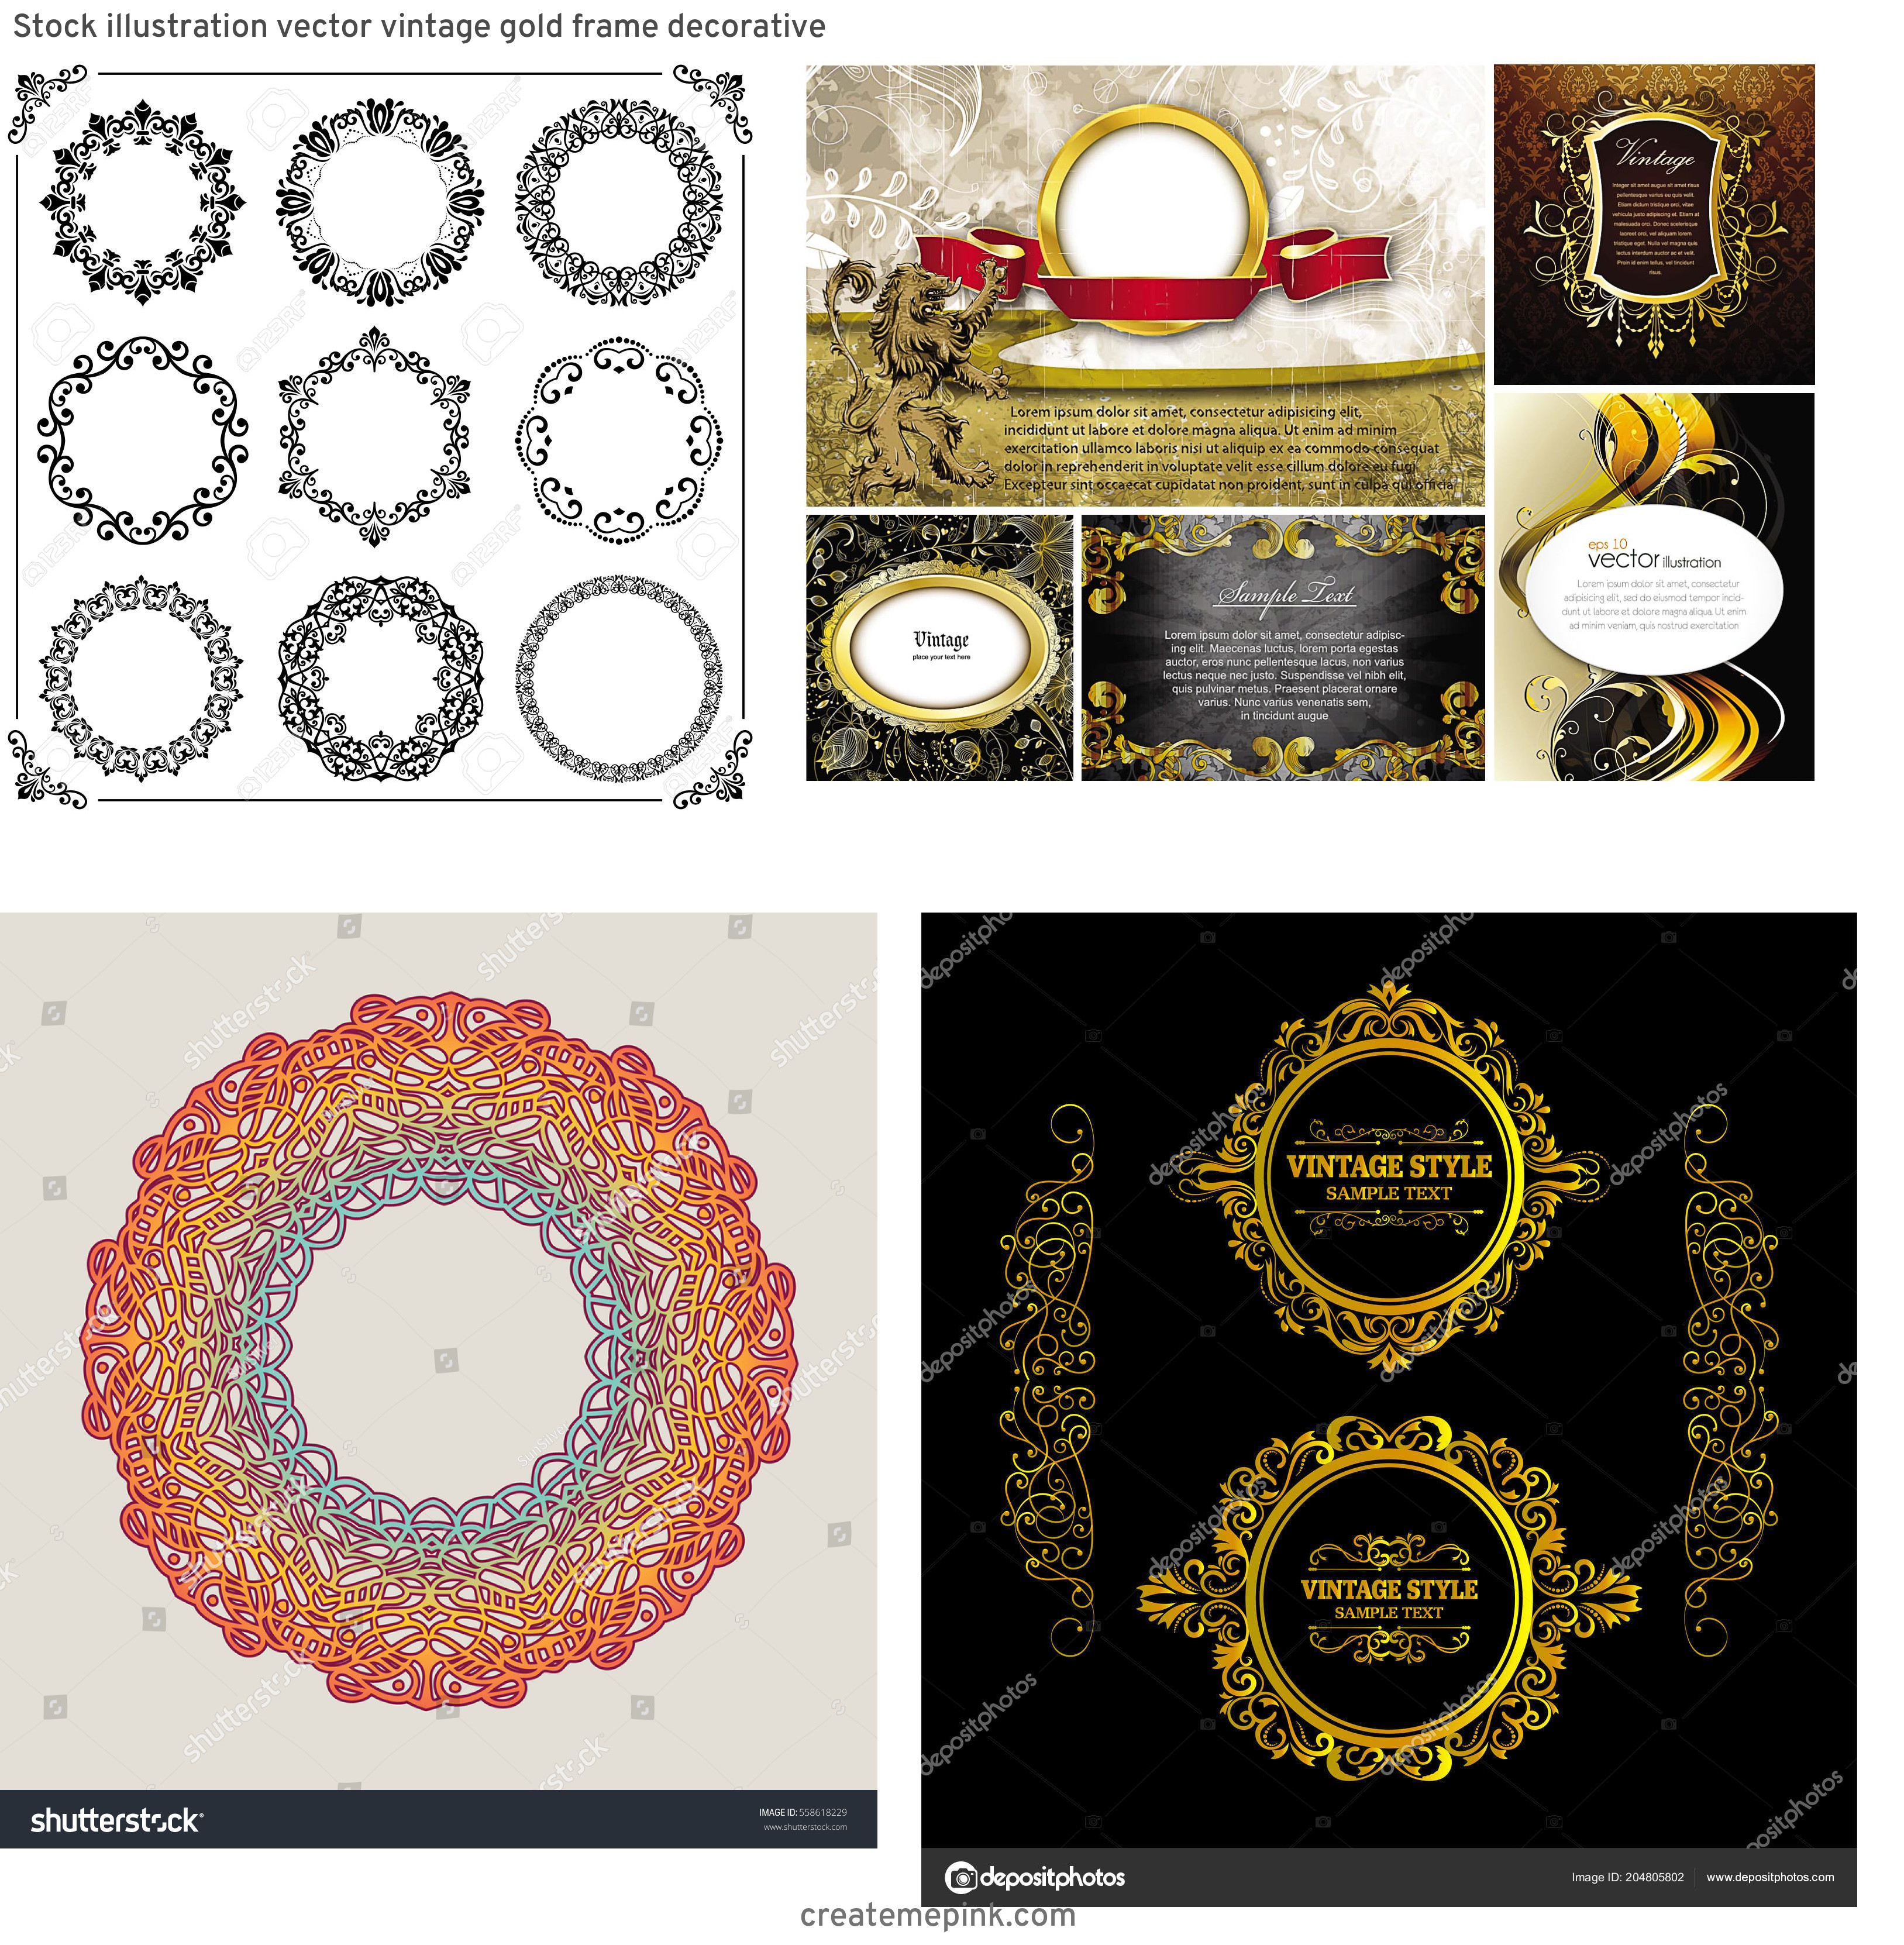 Elements Of Vector Vintage Decorative Frame: Stock Illustration Vector Vintage Gold Frame Decorative